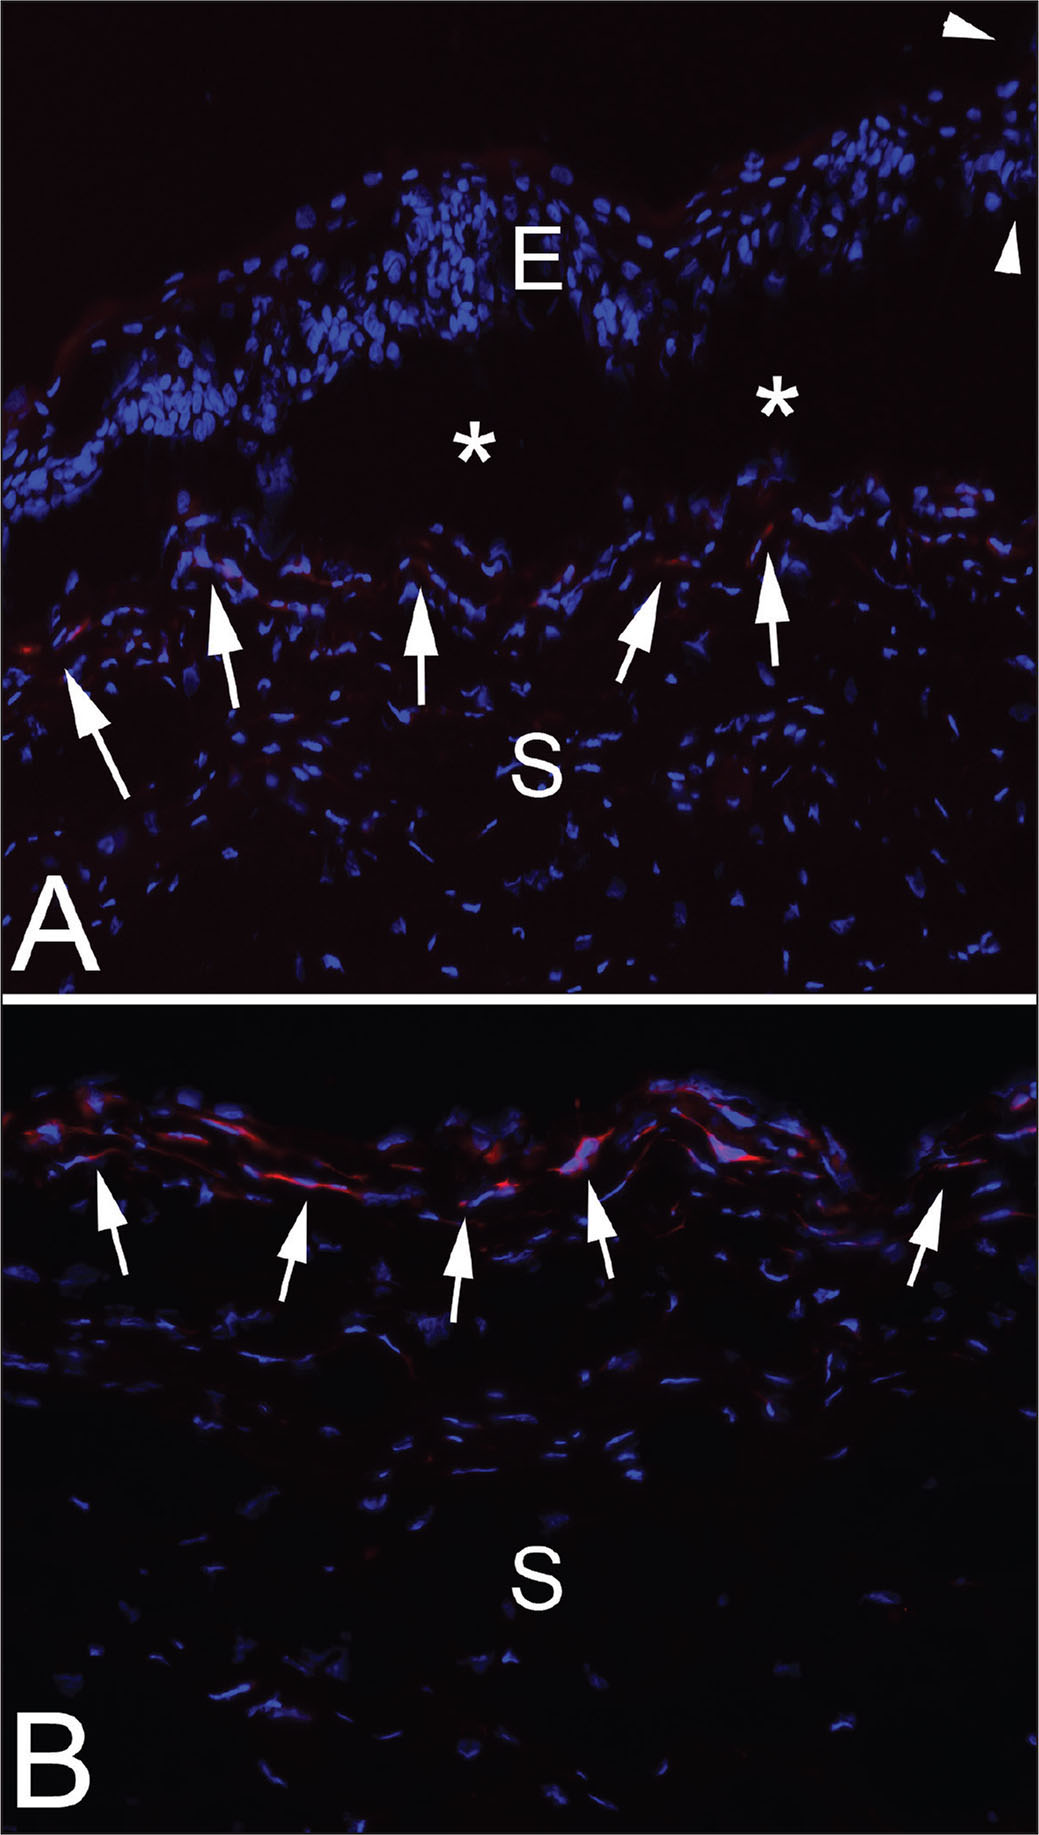 Immunohistochemistry for the alpha-smooth muscle actin (α-SMA) marker for myofibroblasts in the cornea of rabbit 1. Blue stain is DAPI that stains all cell nuclei. (A) The epithelial leading edge (arrowheads) is rolled and the epithelium for up to 0.3 mm posterior to the leading edge showed poor adhesion and repeated artifactual dissociation (*) from the underlying stroma (S) in all sections cut with a cryostat. α-SMA+ myofibroblasts are present at the stromal surface all along the dissociated epithelium (E) (arrows) and, therefore, peripheral to the leading edge of the epithelium in the PED (original magnification ×400). (B) In the center of the PED the stromal surface has prominent α-SMA+ myofibroblasts (arrows) (original magnification ×400).